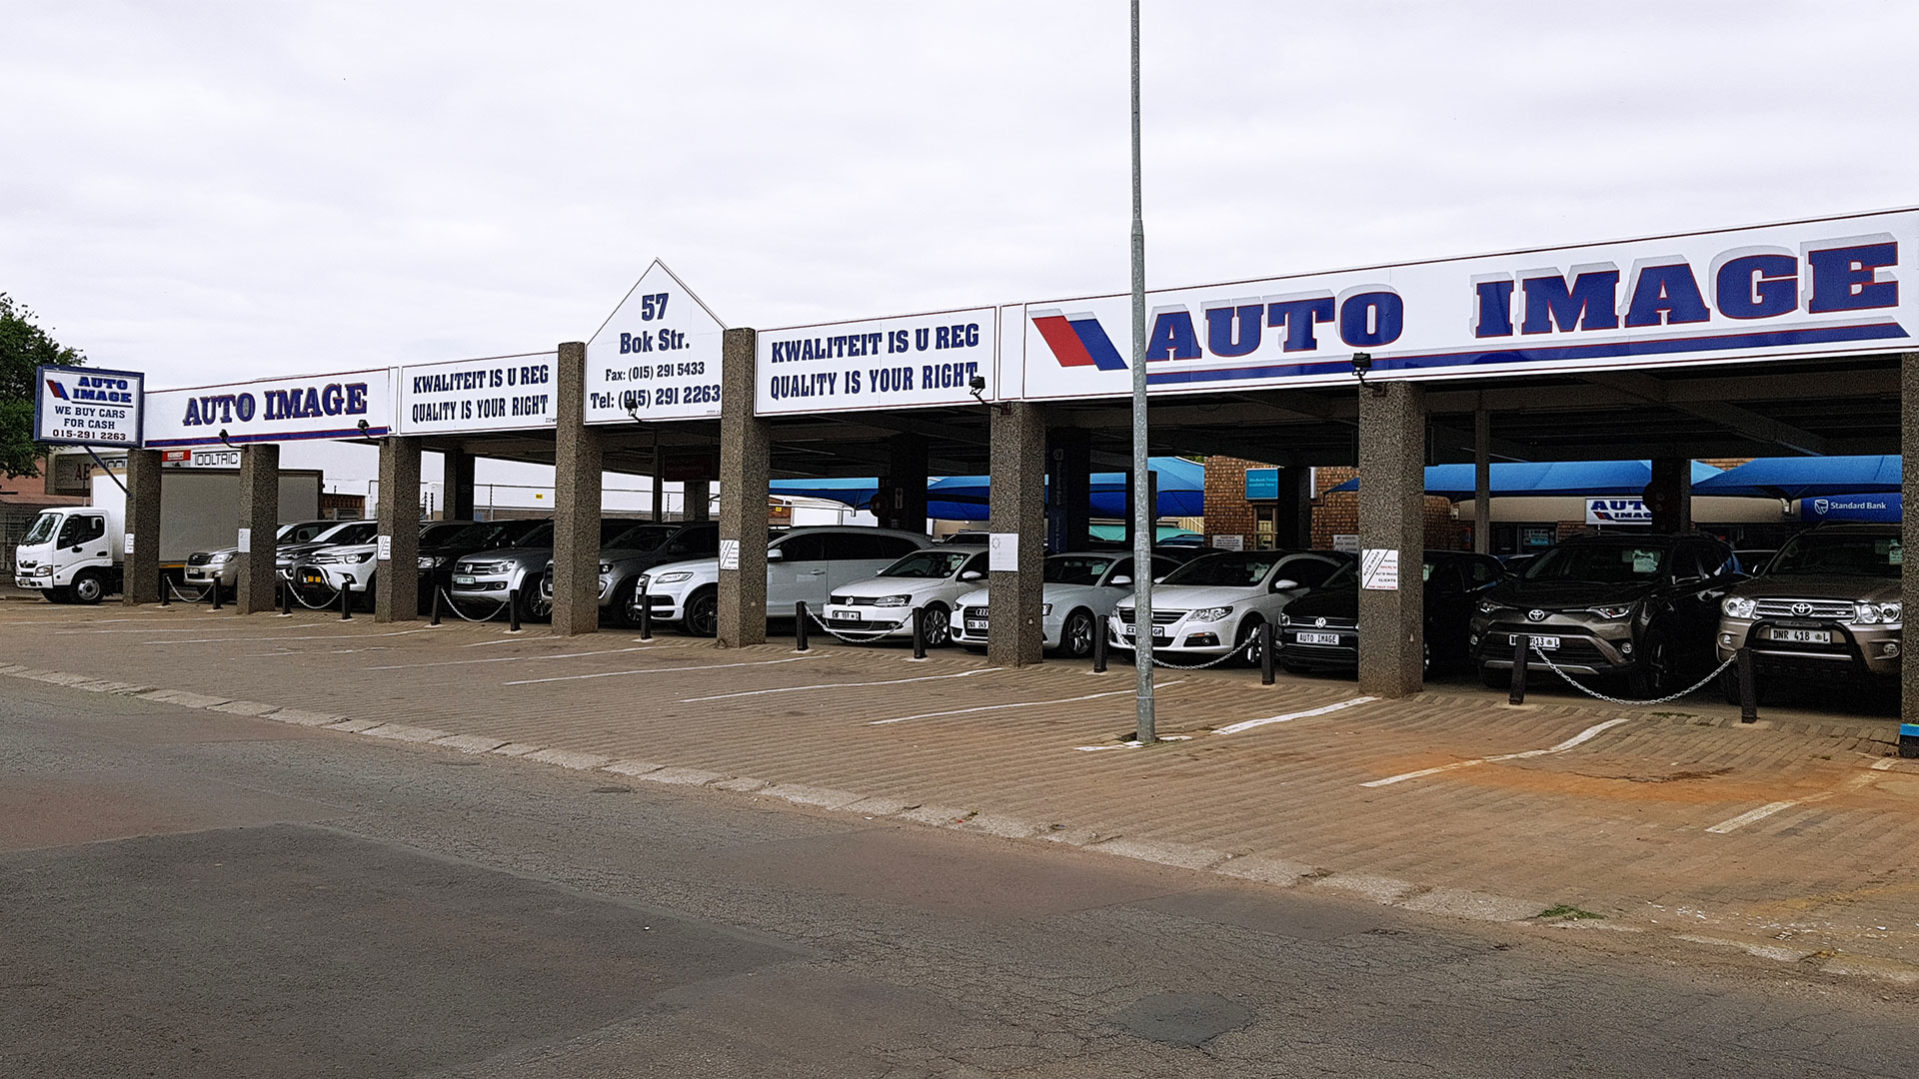 Auto Image Motors Showroom Used Cars for sale Polokwane Limpopo